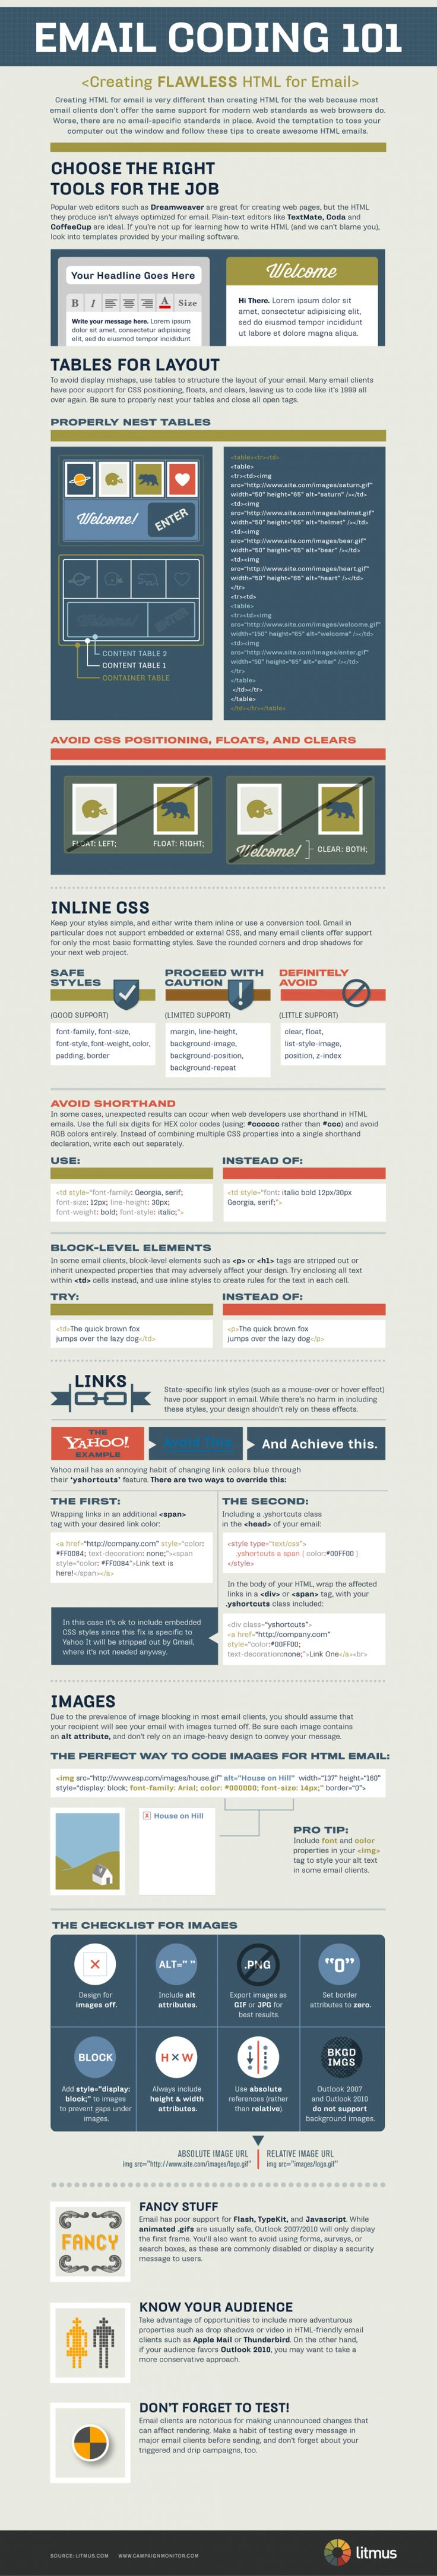 Email coding 101 useful infographic job aid describing how to use html to create and